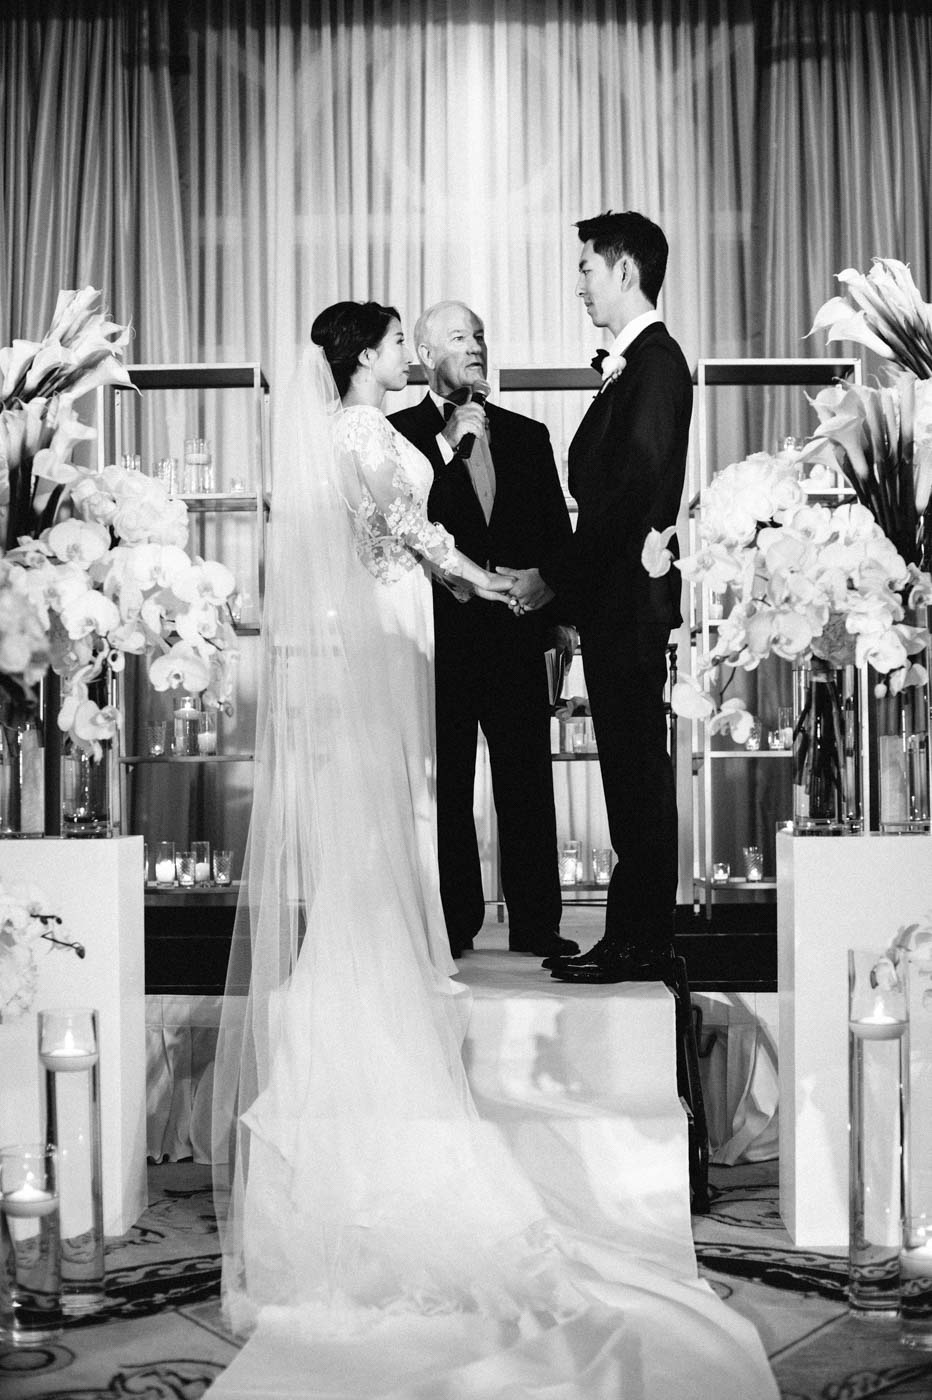 Photos of Erin and Howard's wedding at the Casa Del Mar Hotel photographed by Amy of Docuvitae in Santa Monica, CA on December 20, 2015.